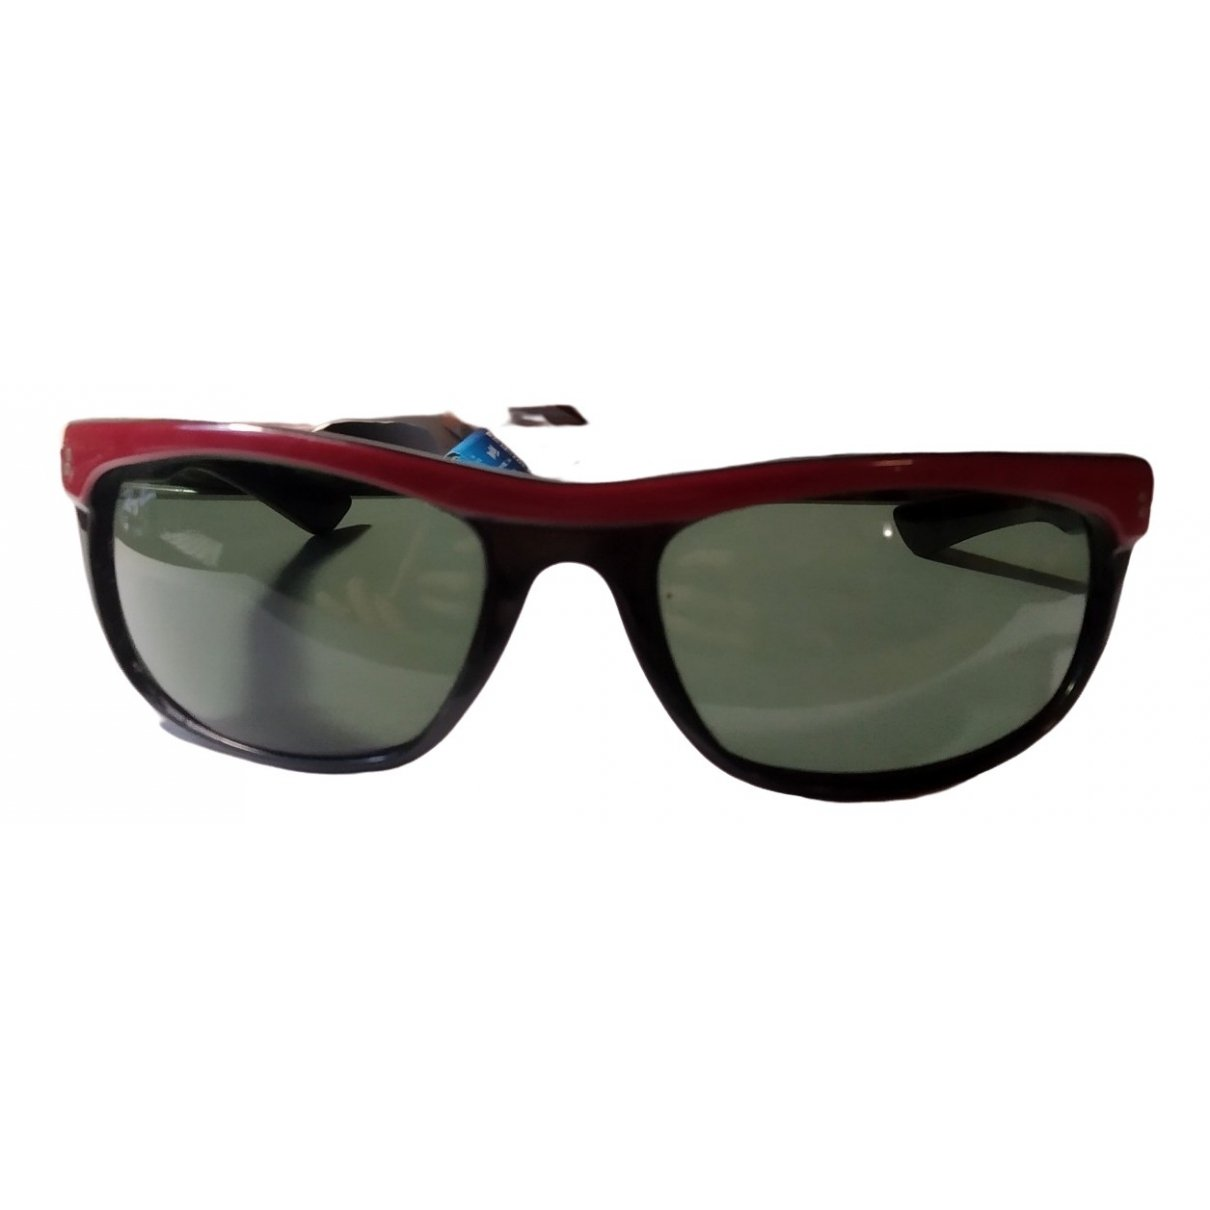 Ray-ban N Black Sunglasses for Men